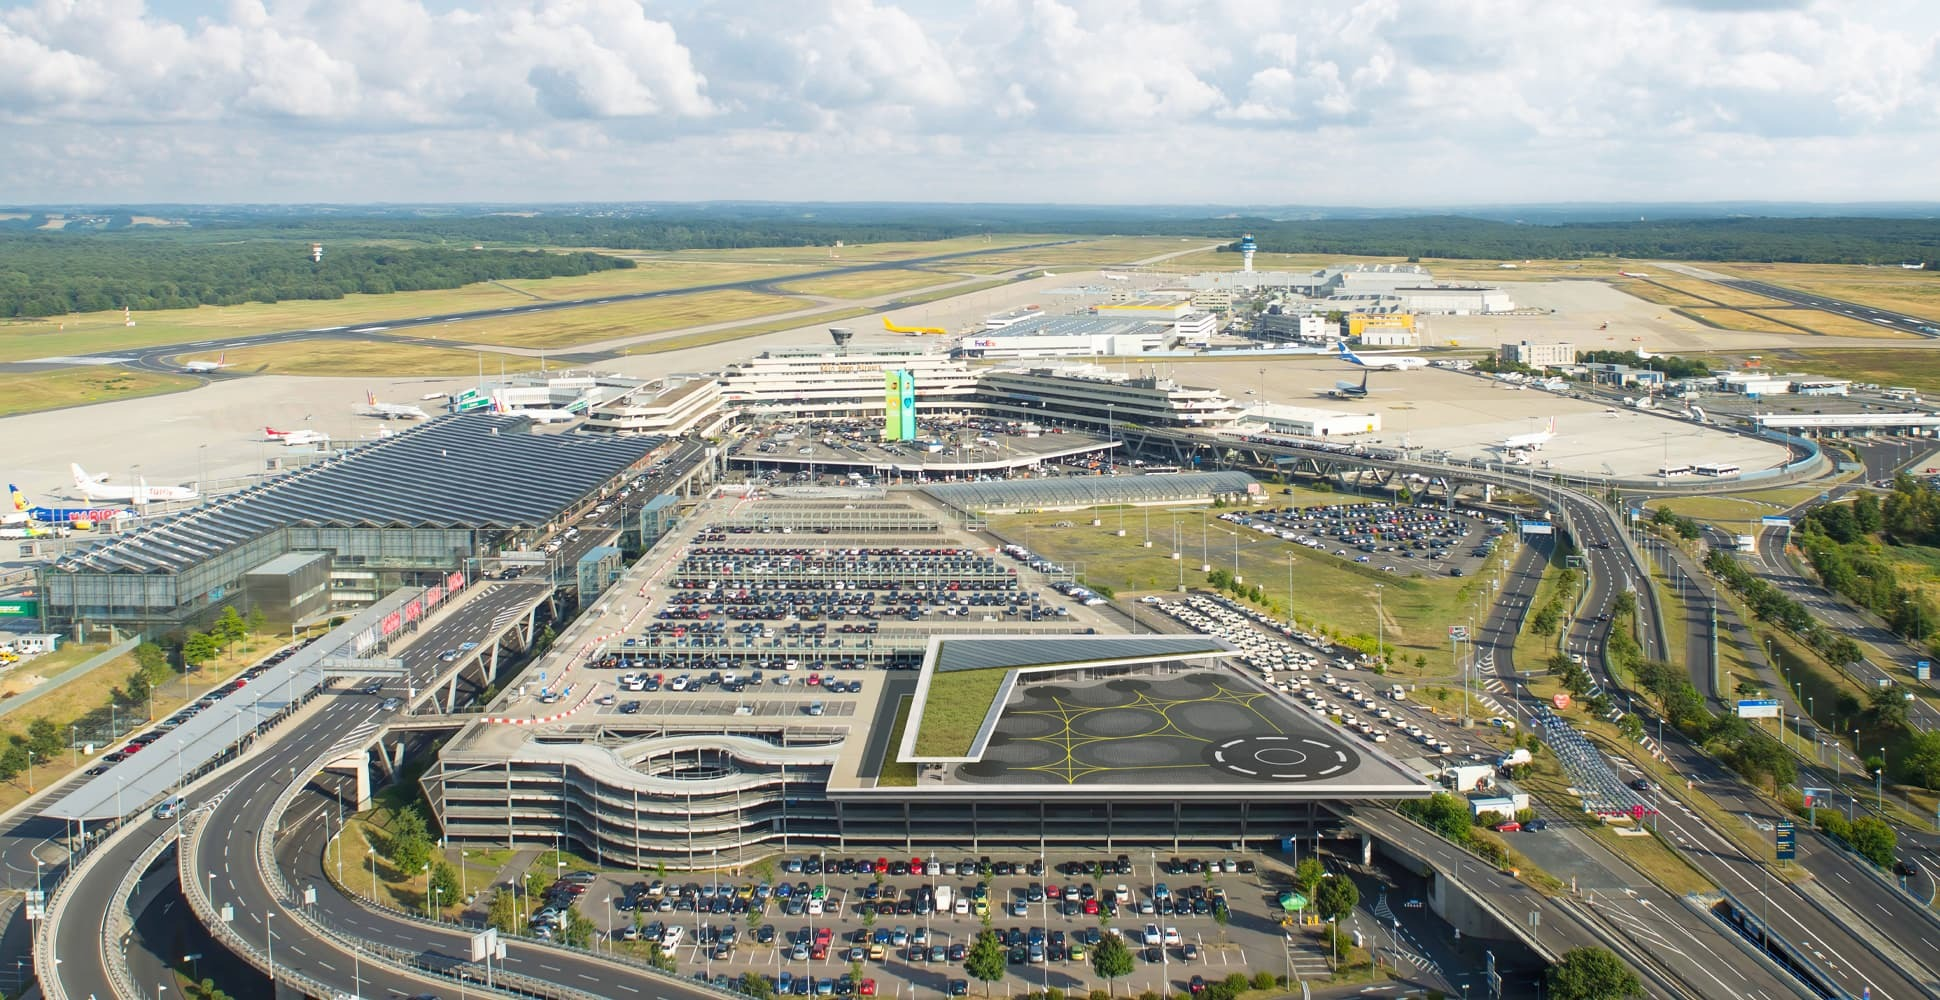 Rendering of a possible vertiport at Cologne Bonn Airport (Copyright: CGN/Lilium)